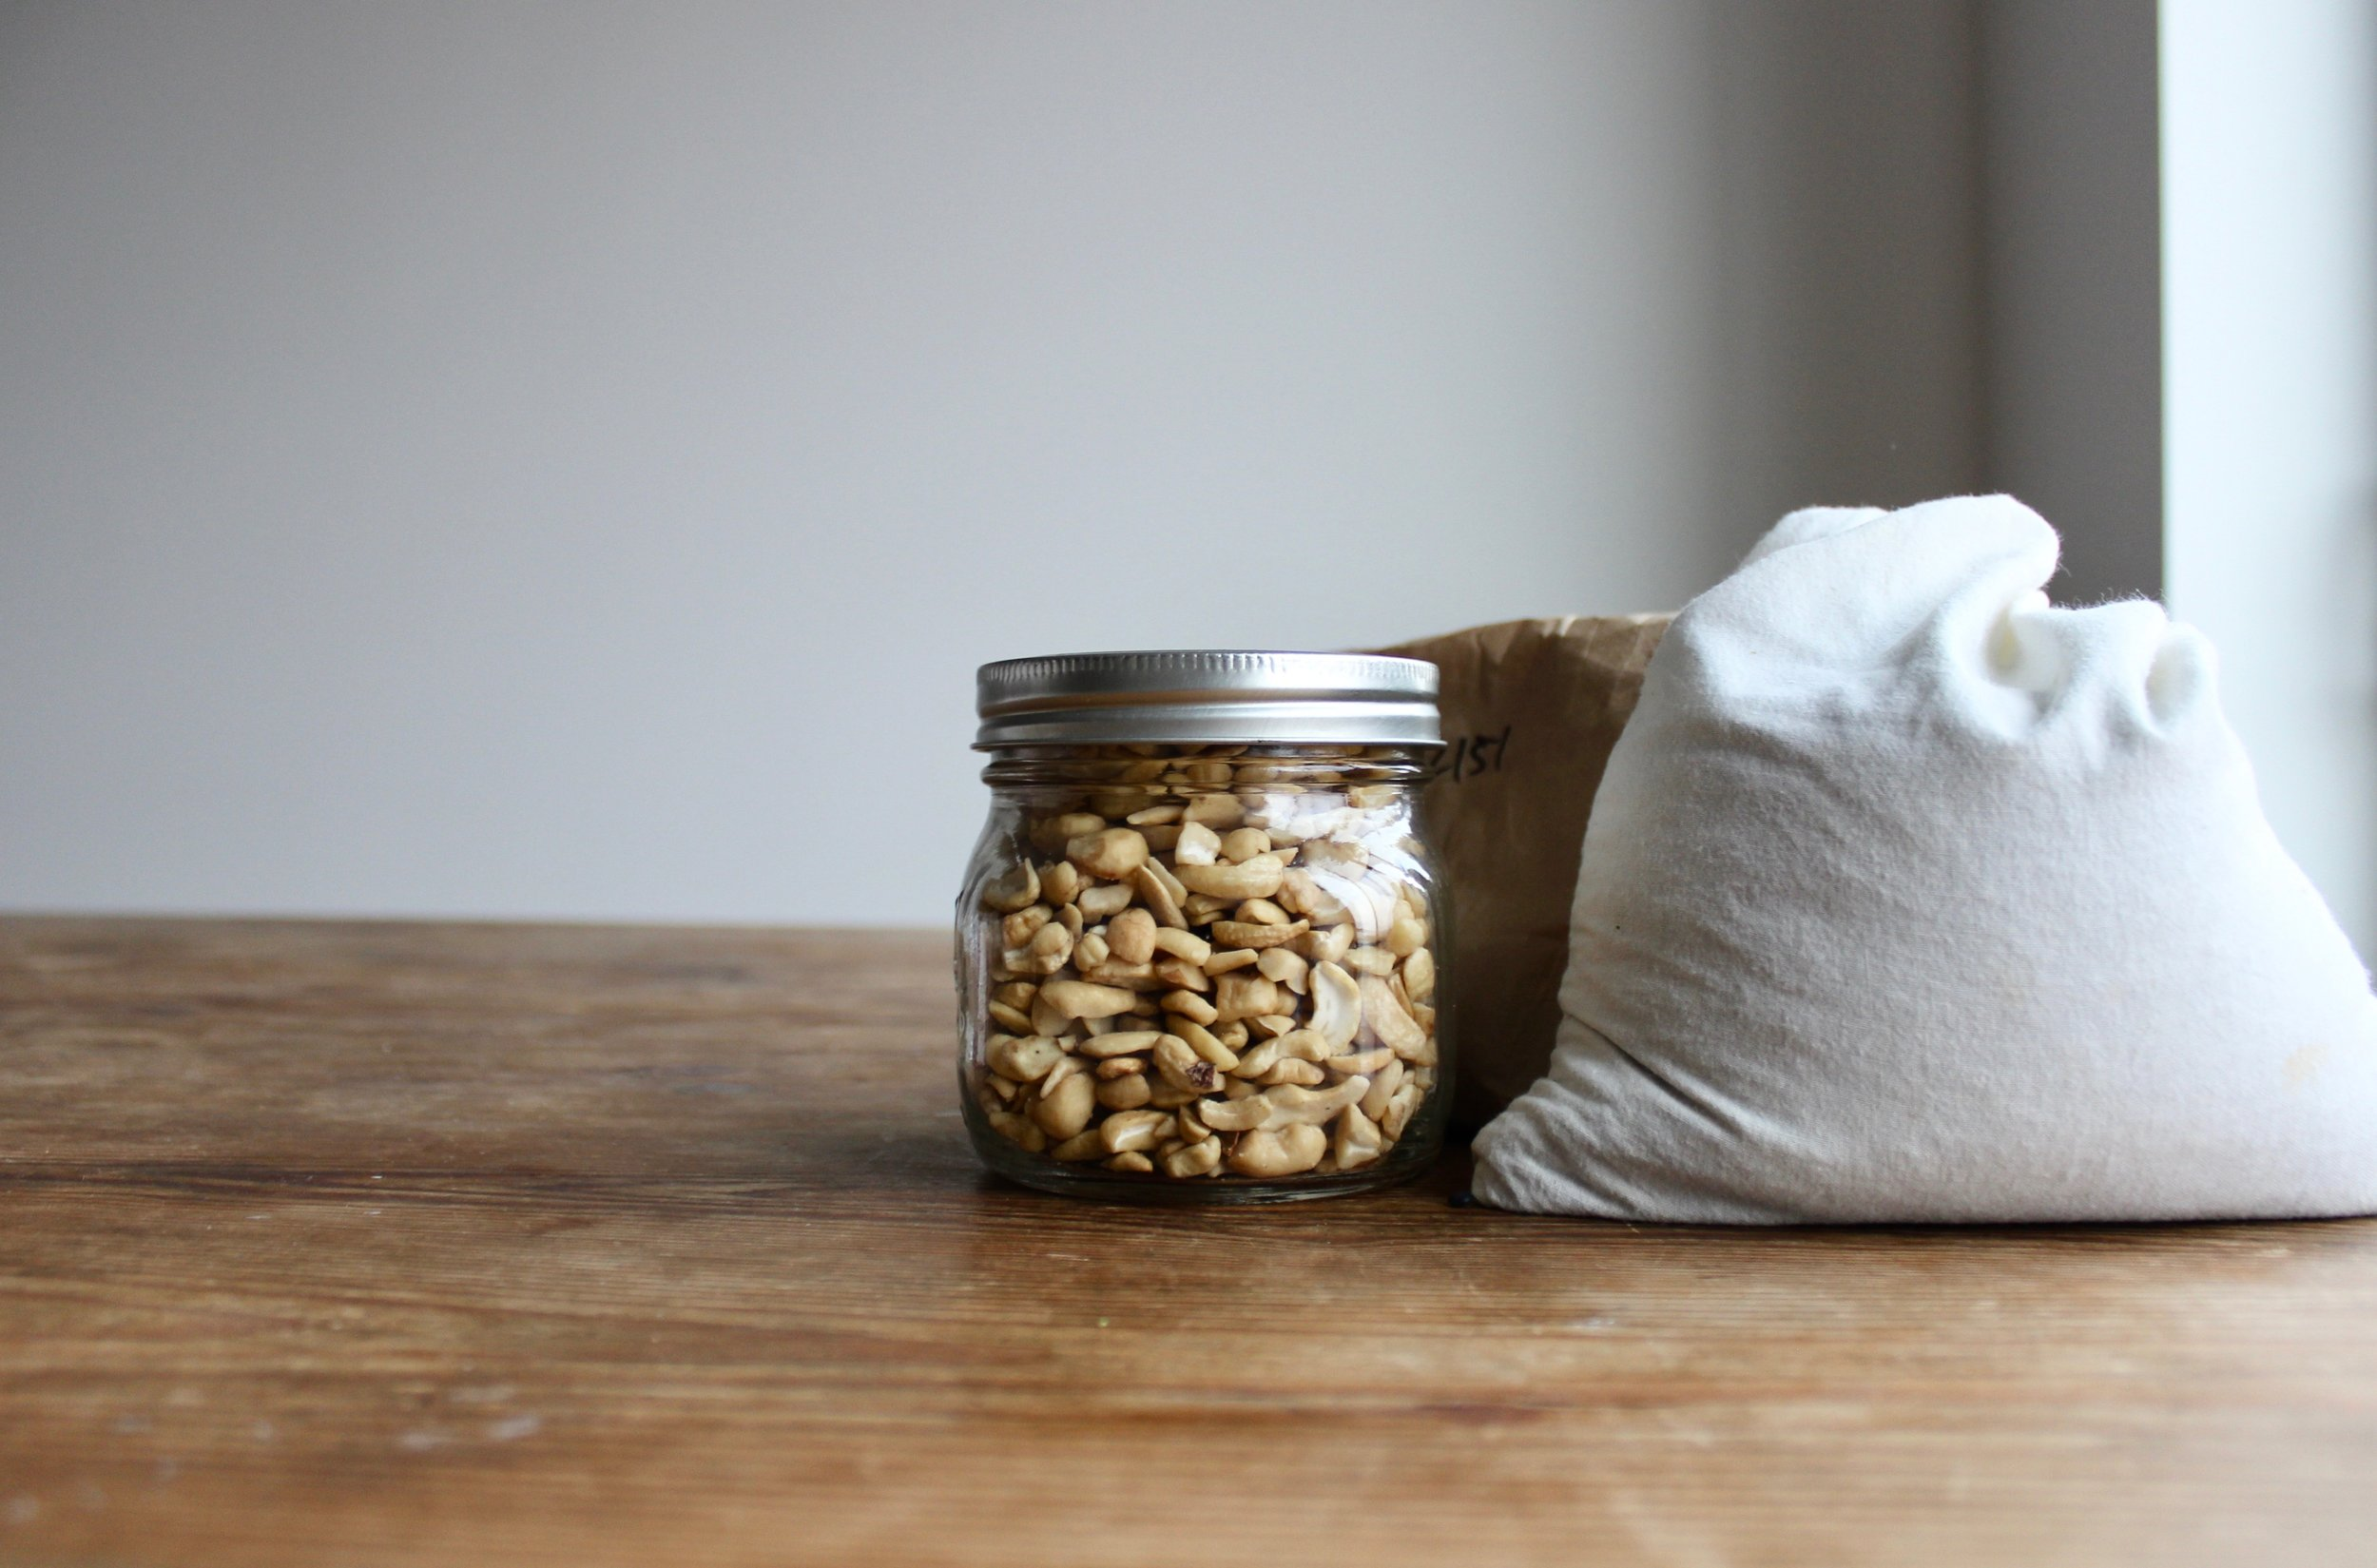 How to go zero waste without buying anything new: Shopping the bulk aisle using containers you already own | Litterless